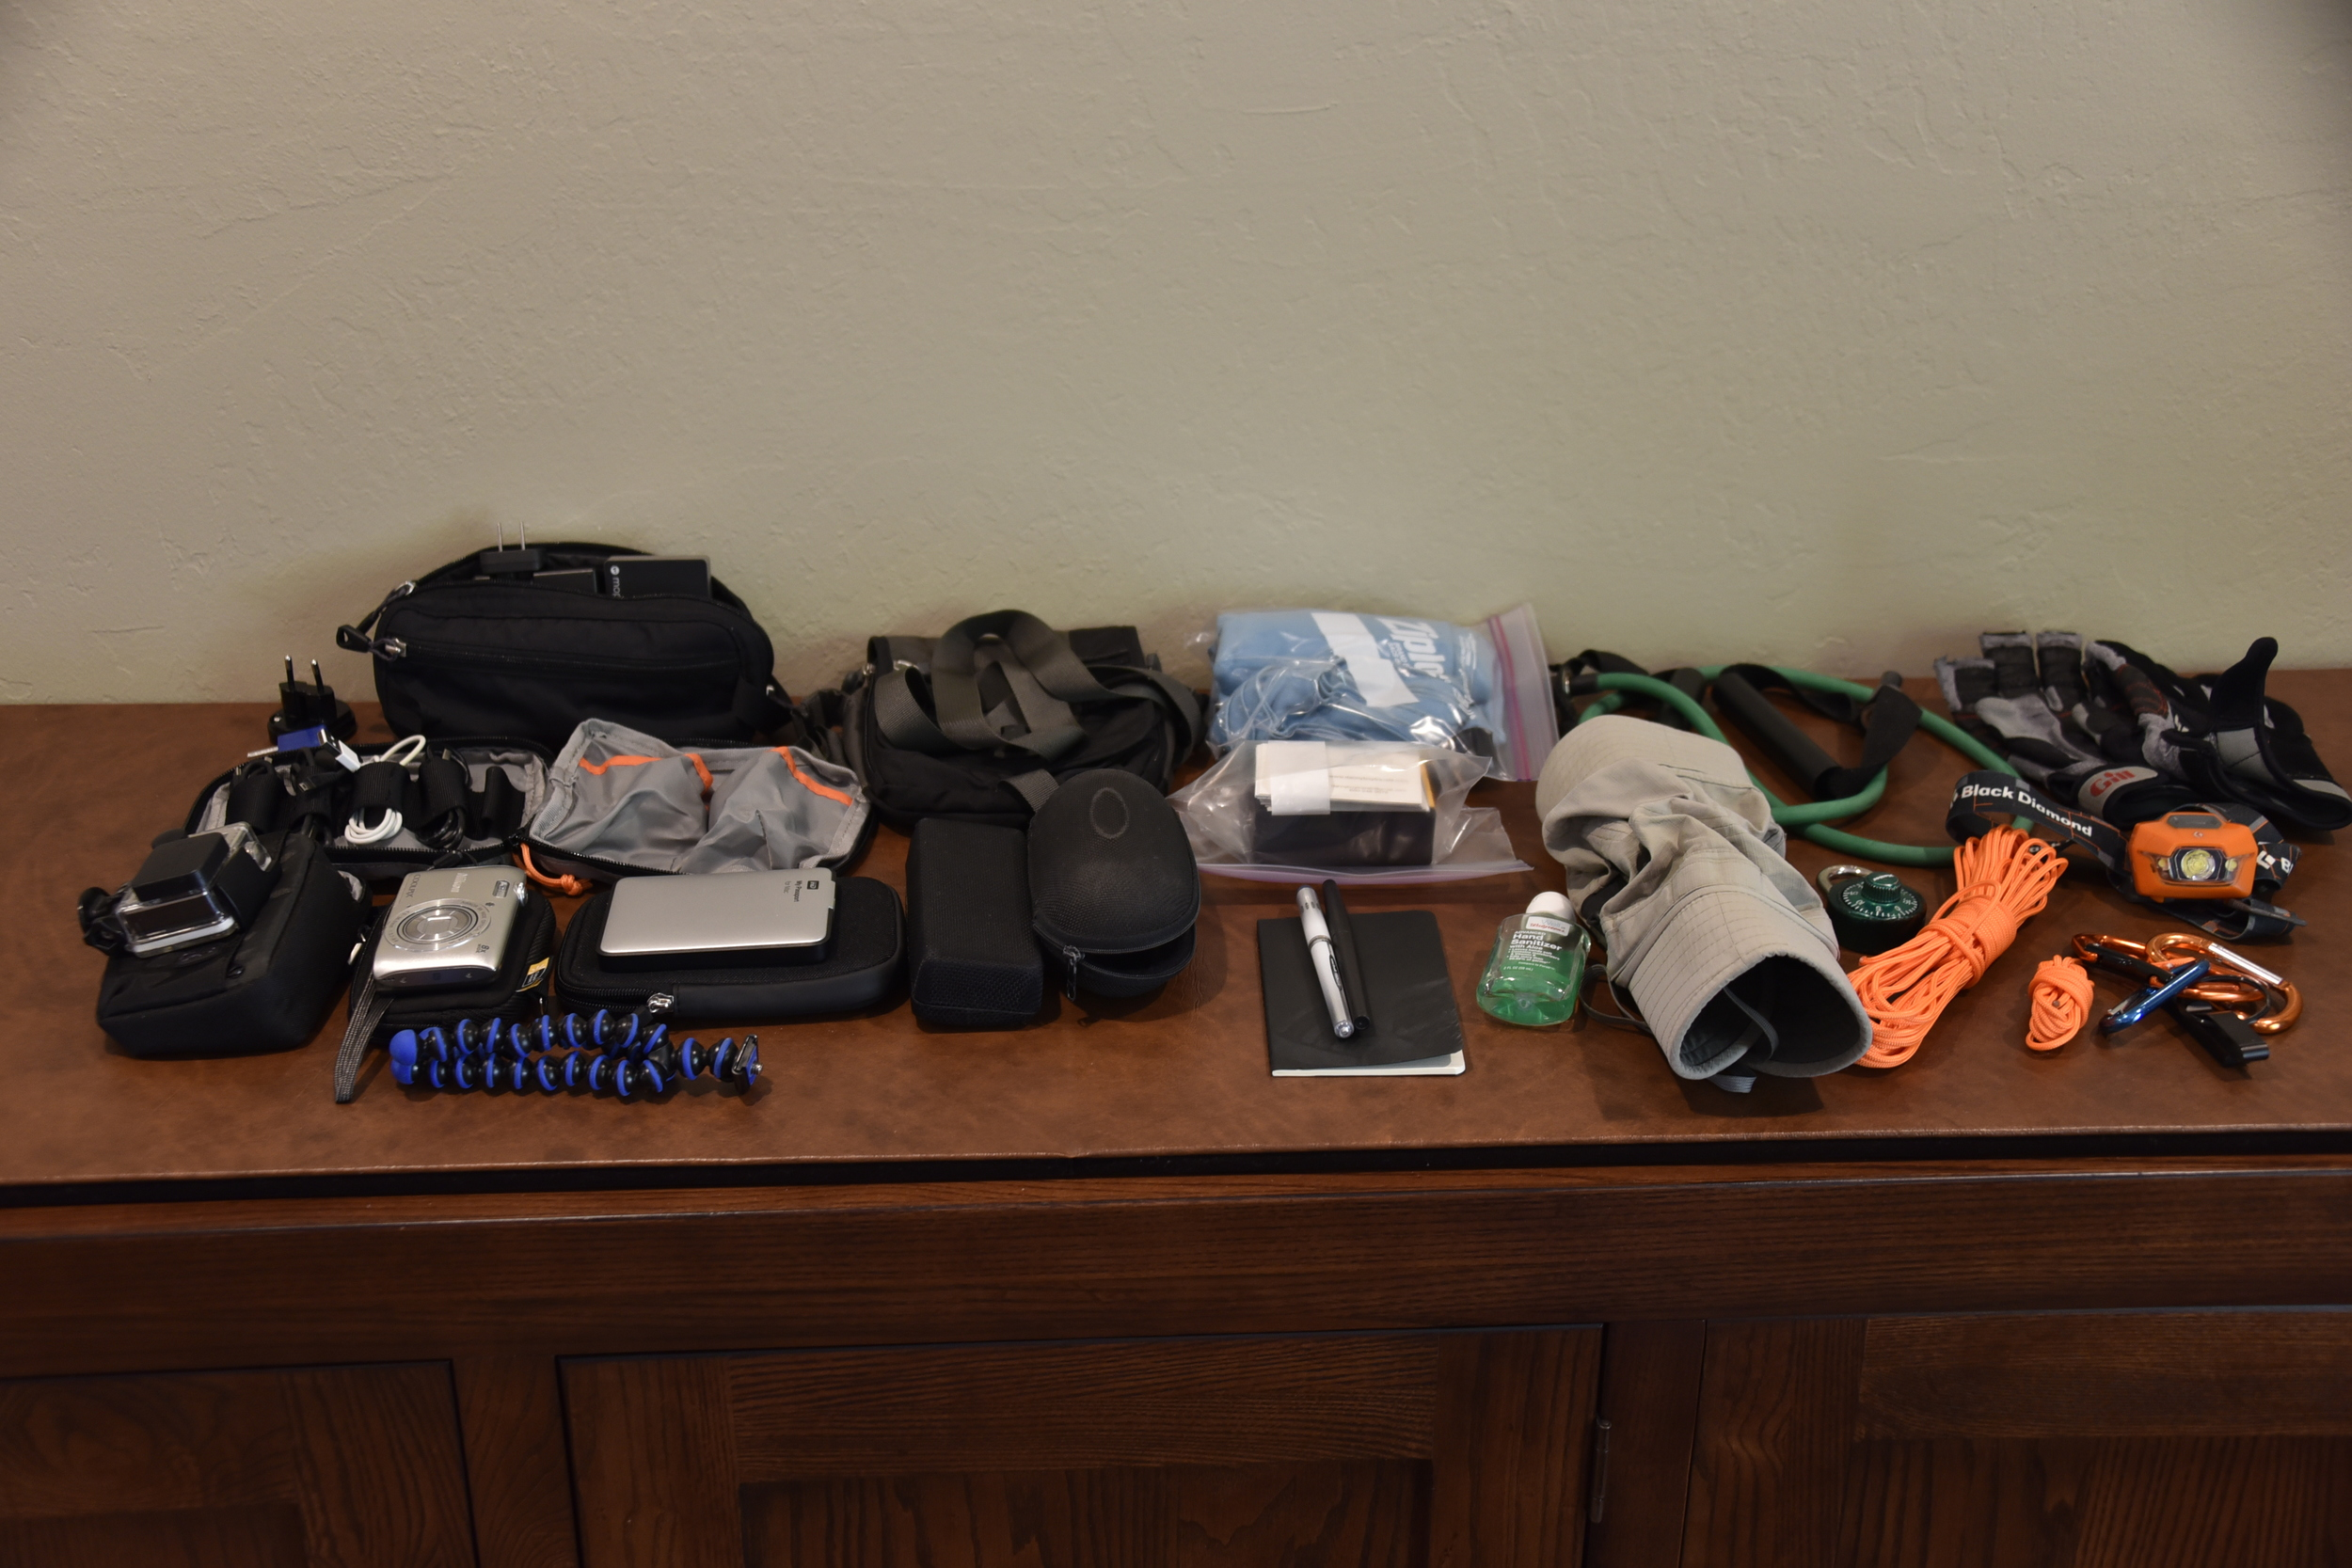 Lots of extra gear! DBT is always prepared.